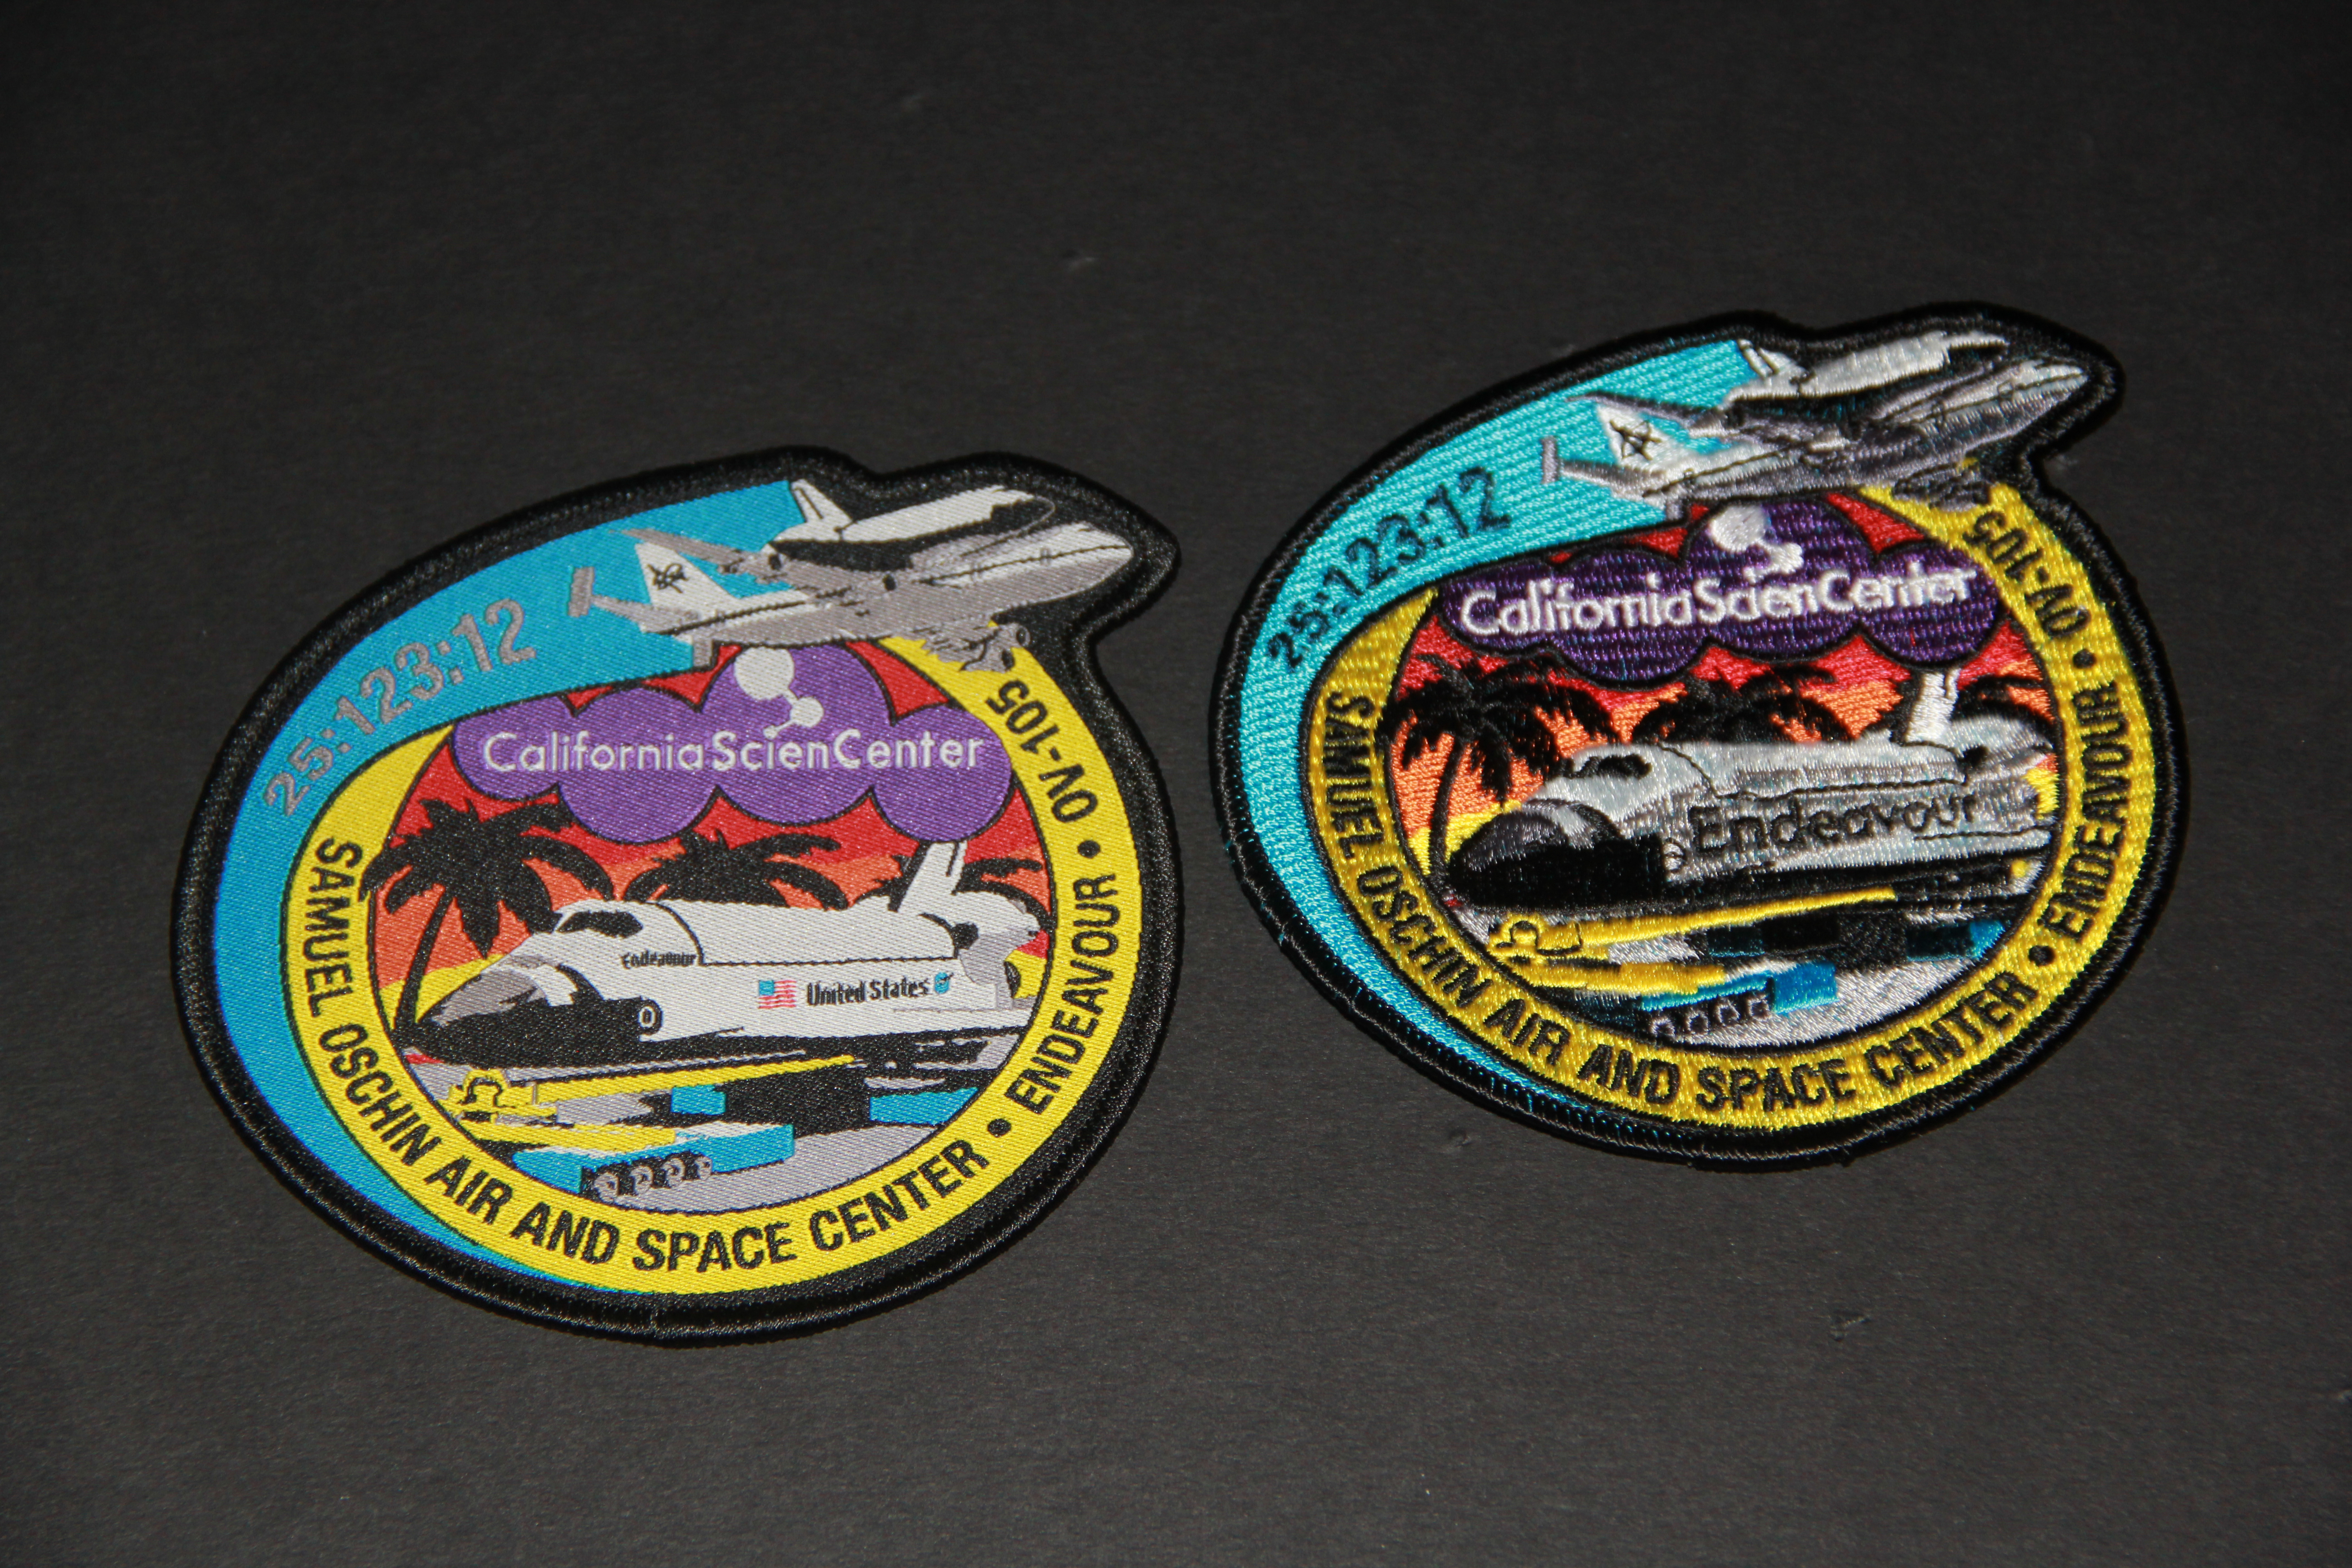 cooper space mission patches - photo #40